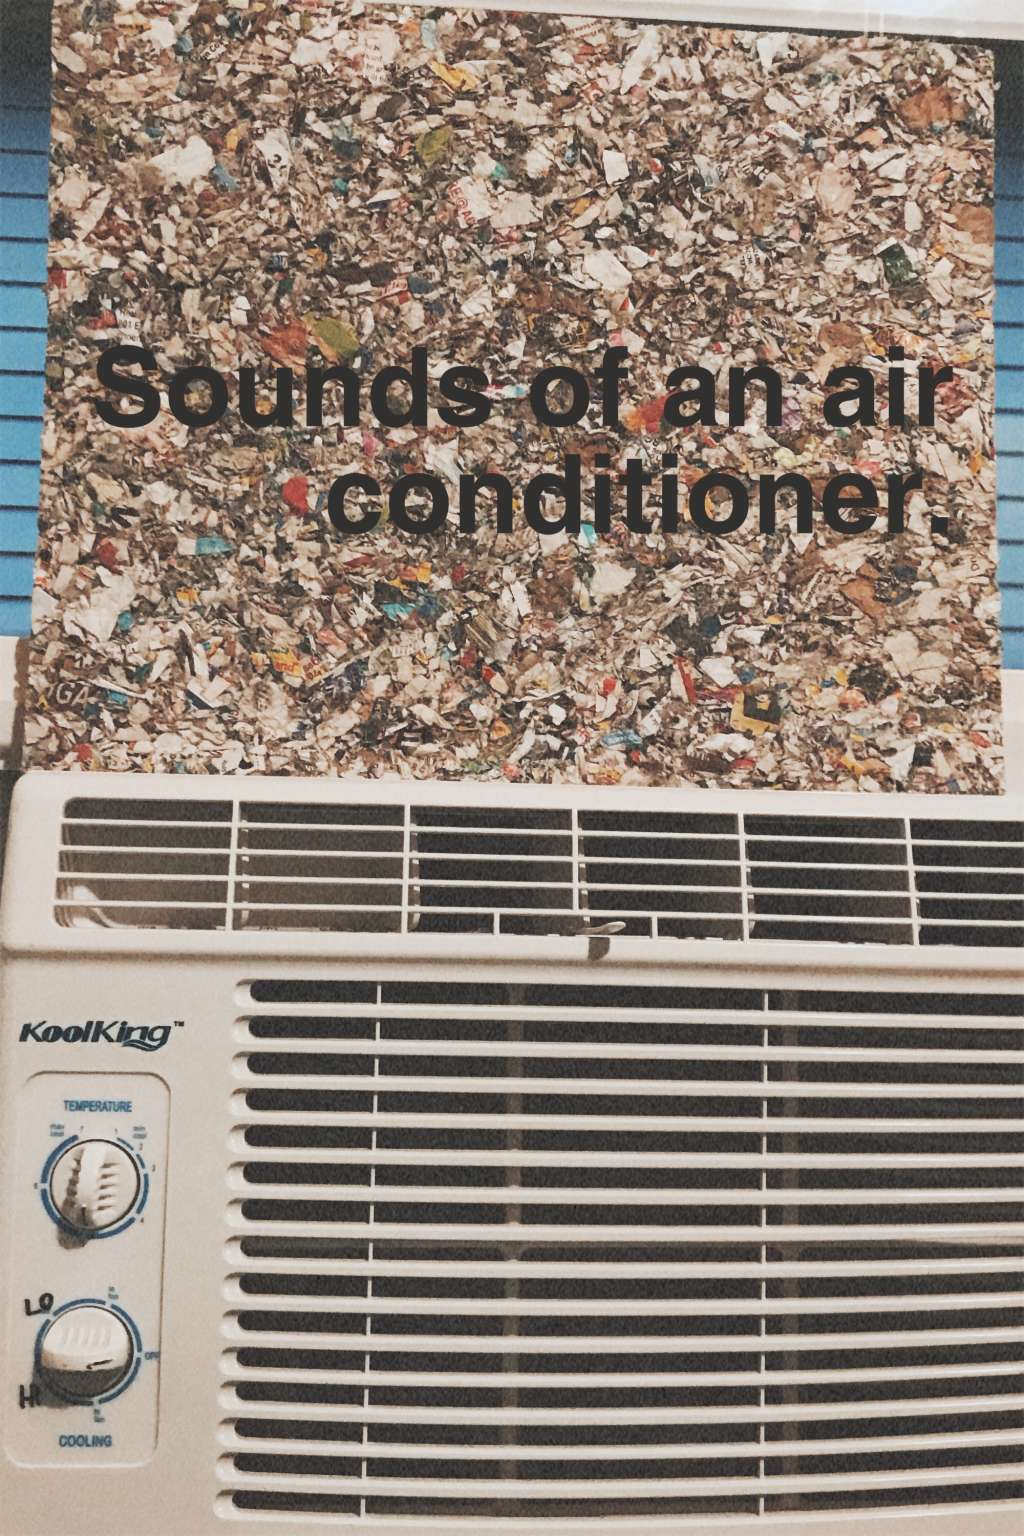 Sounds Of An Air Conditioner. kapak